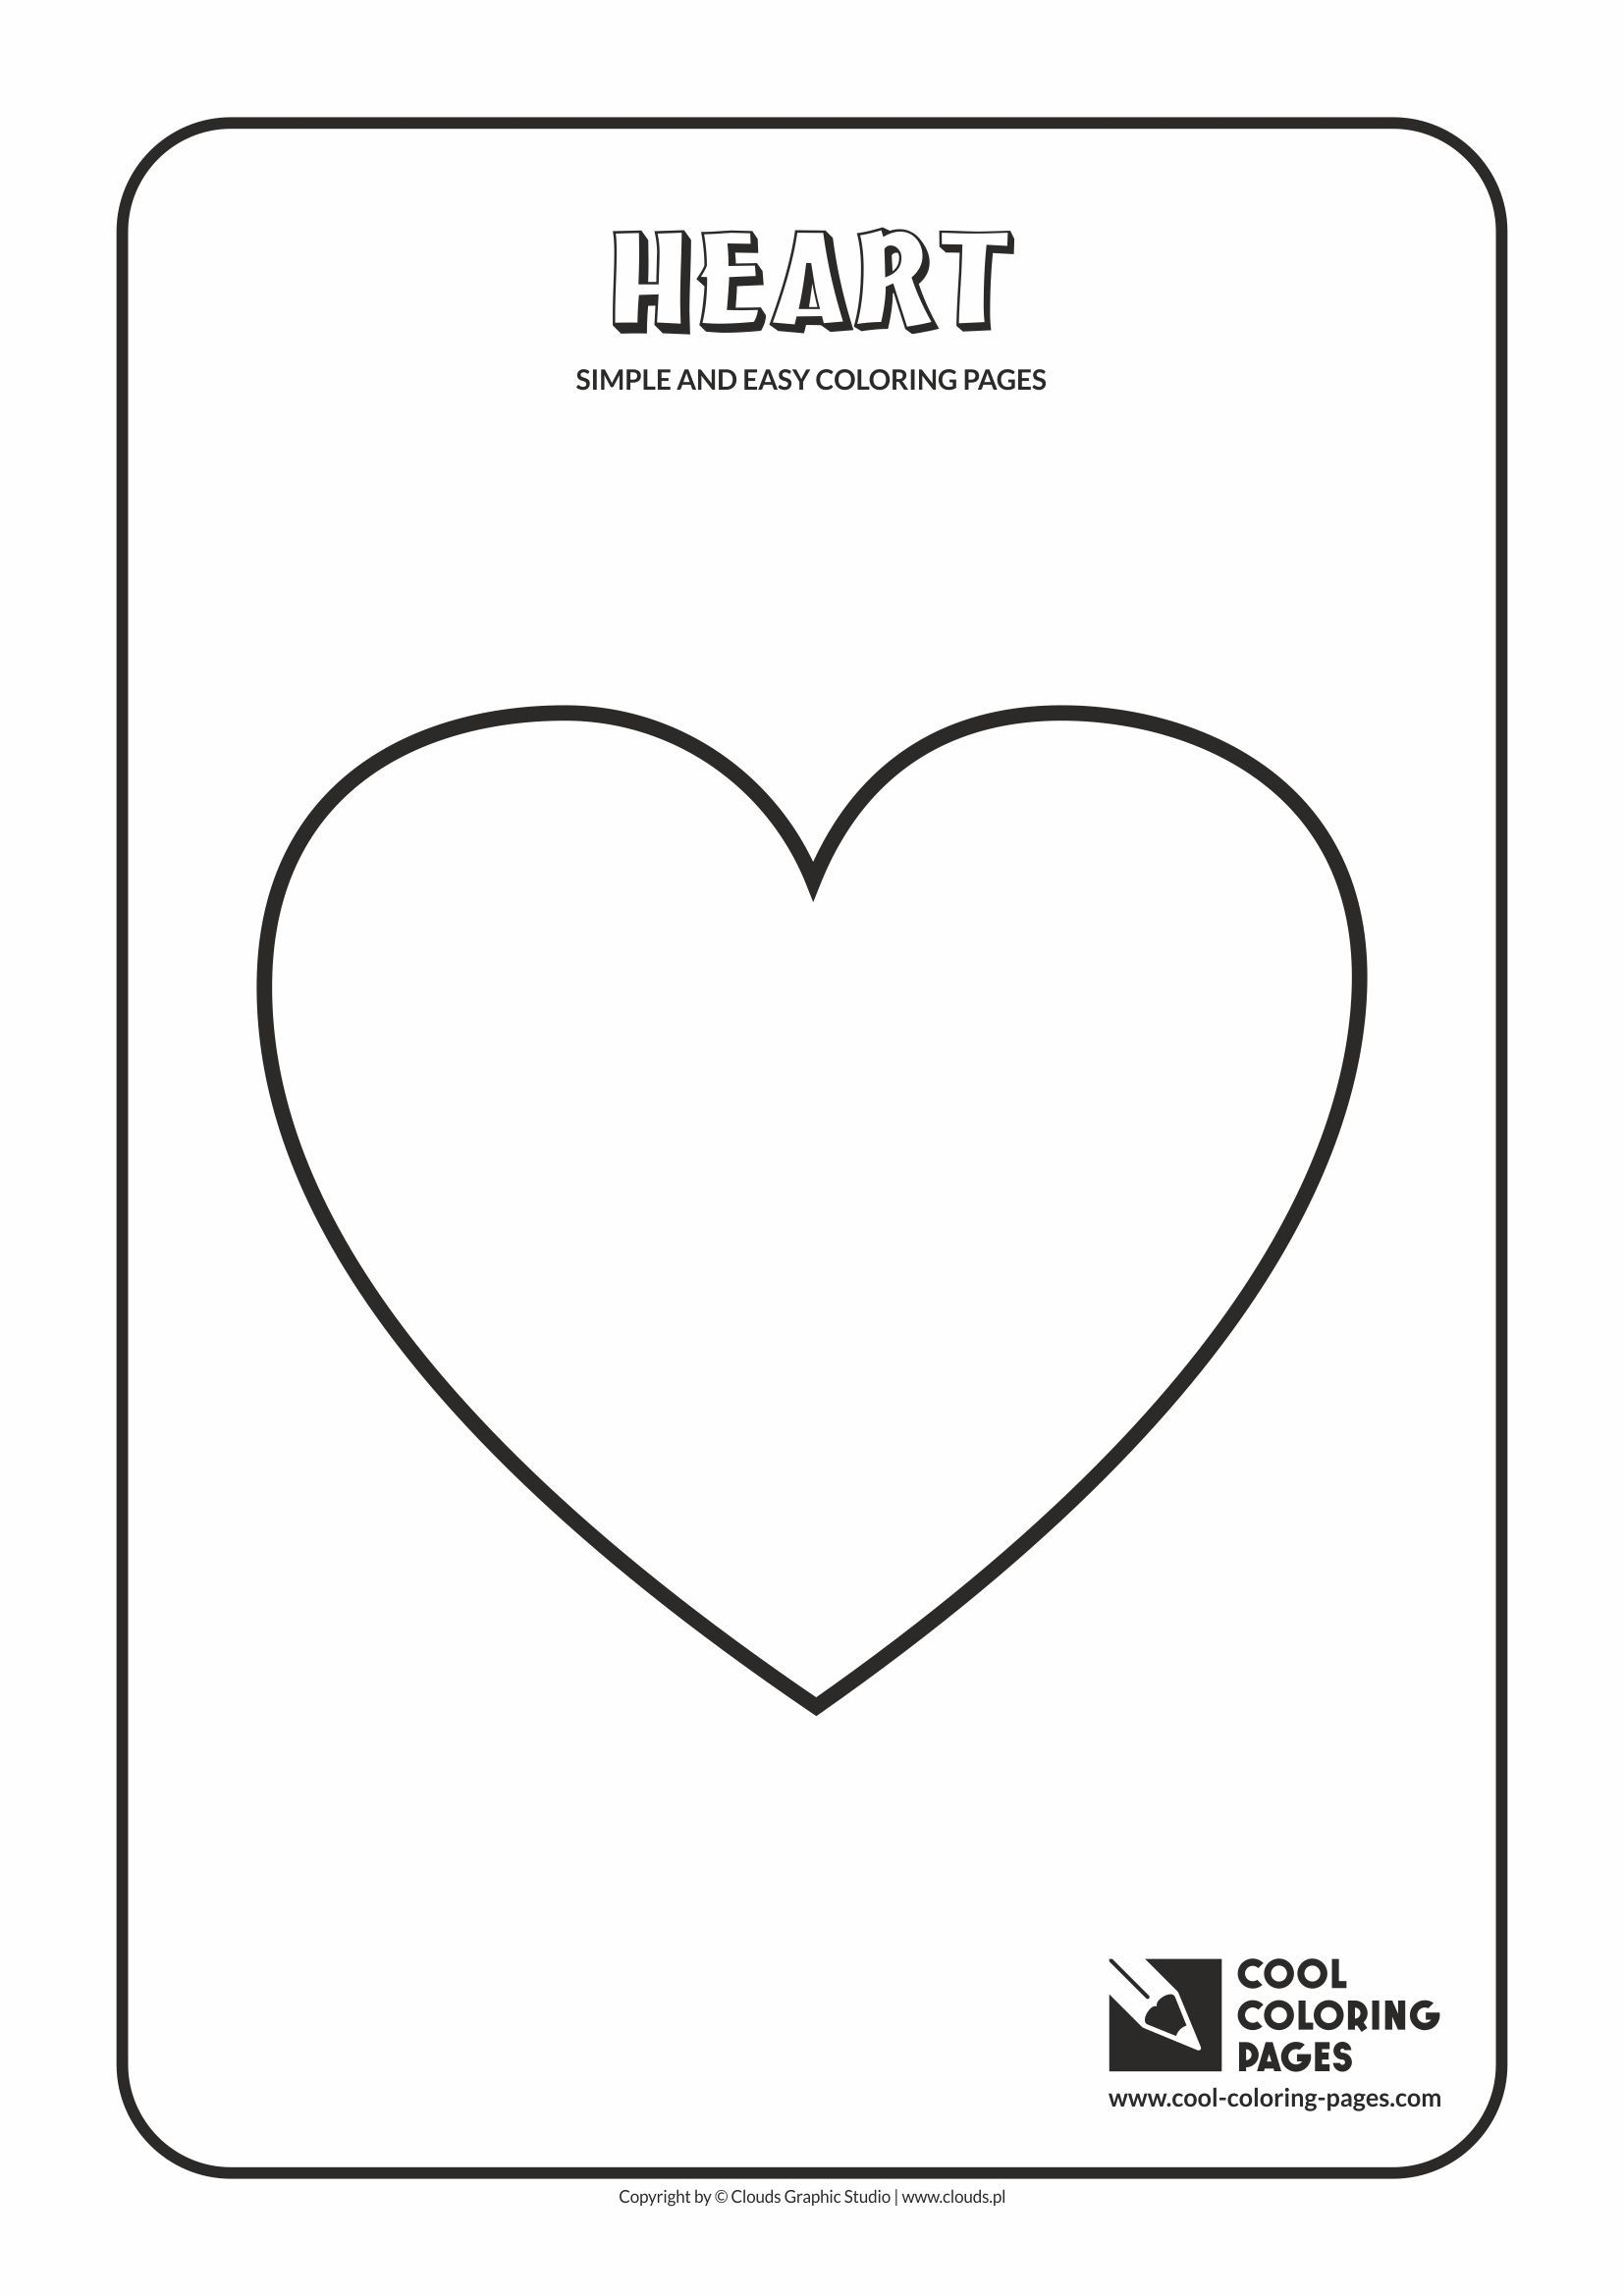 - Simple And Easy Coloring Pages - Heart Easy Coloring Pages, Cool